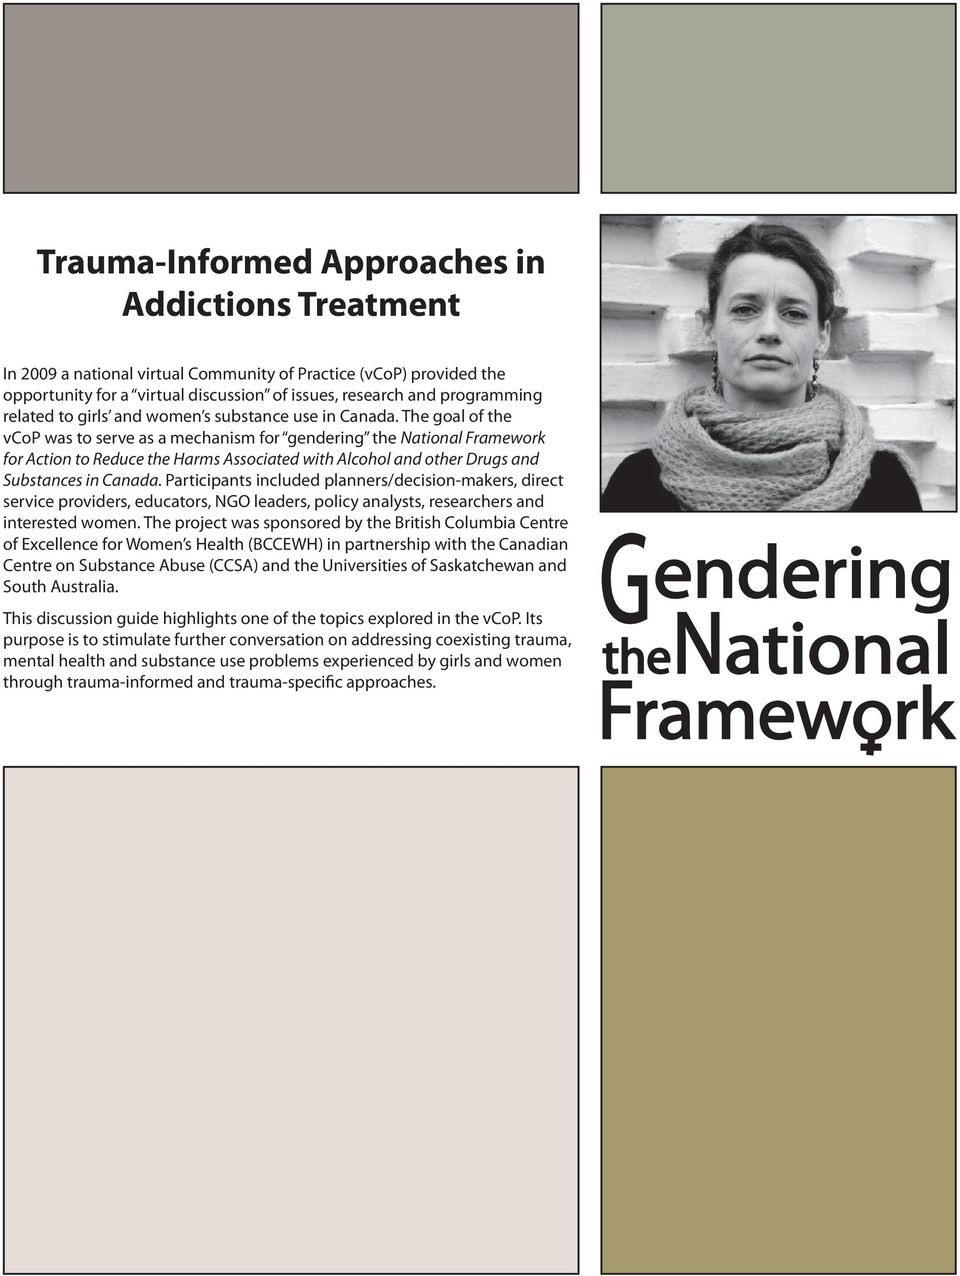 The goal of the vcop was to serve as a mechanism for gendering the National Framework for Action to Reduce the Harms Associated with Alcohol and other Drugs and Substances in Canada.